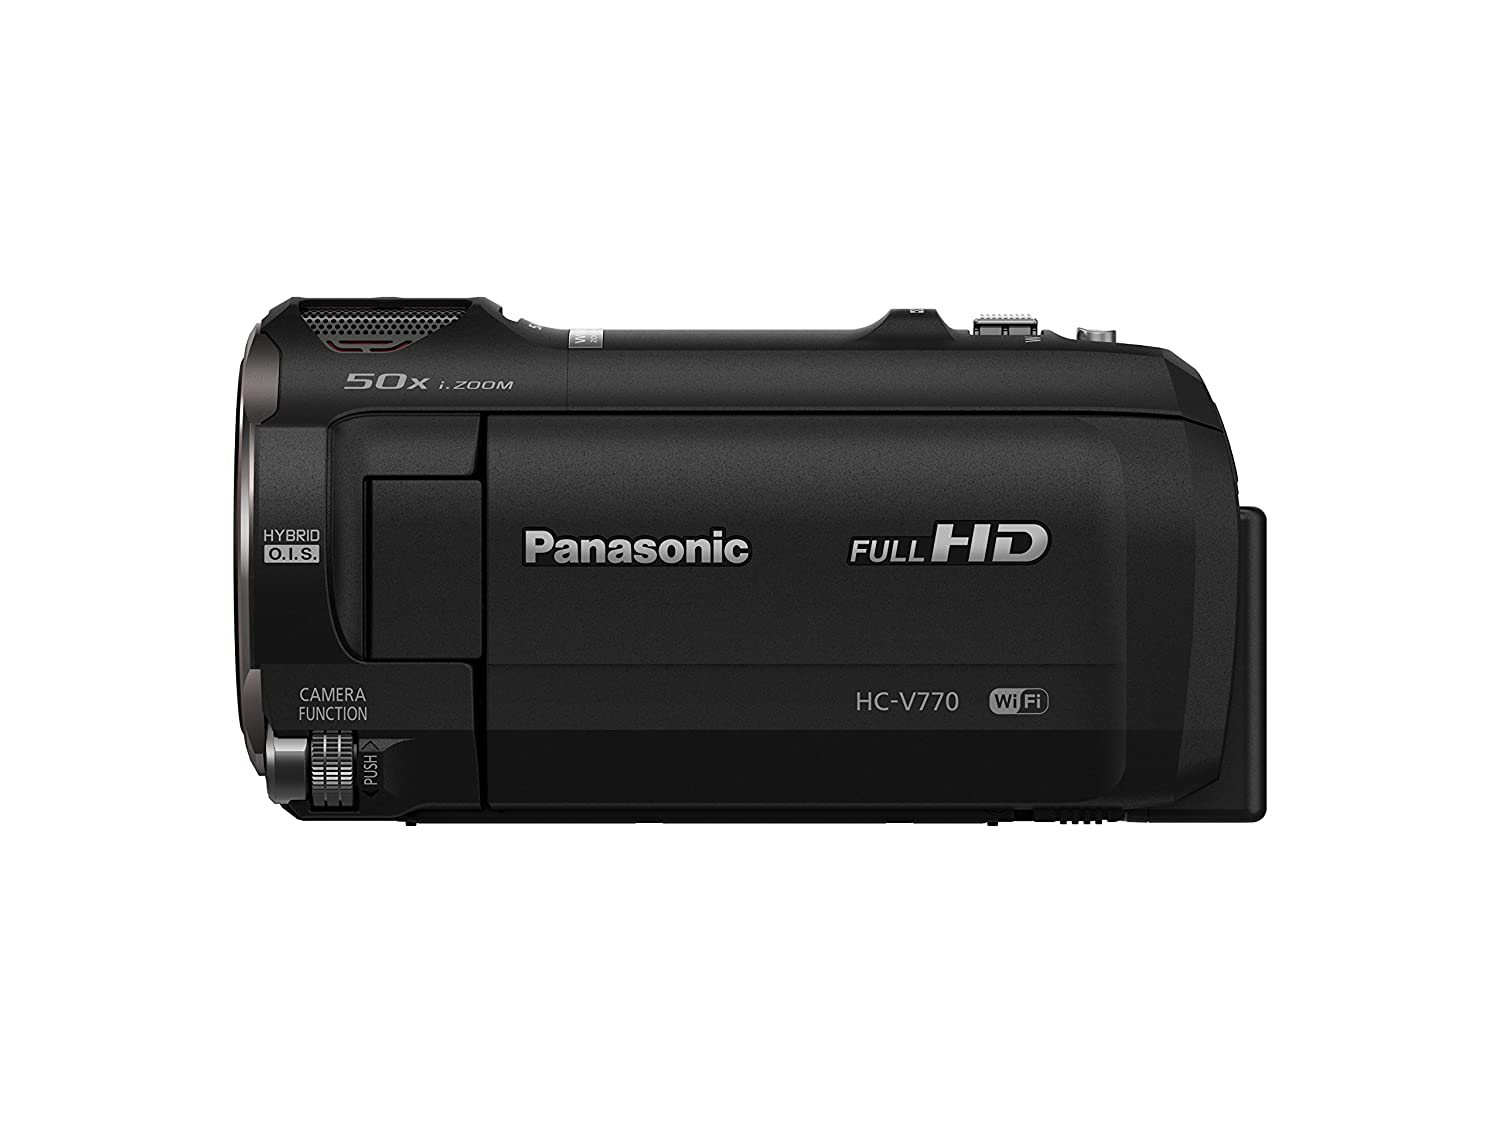 Amazon.com : Panasonic Full HD Camcorder HC-V770, 20X Optical Zoom on